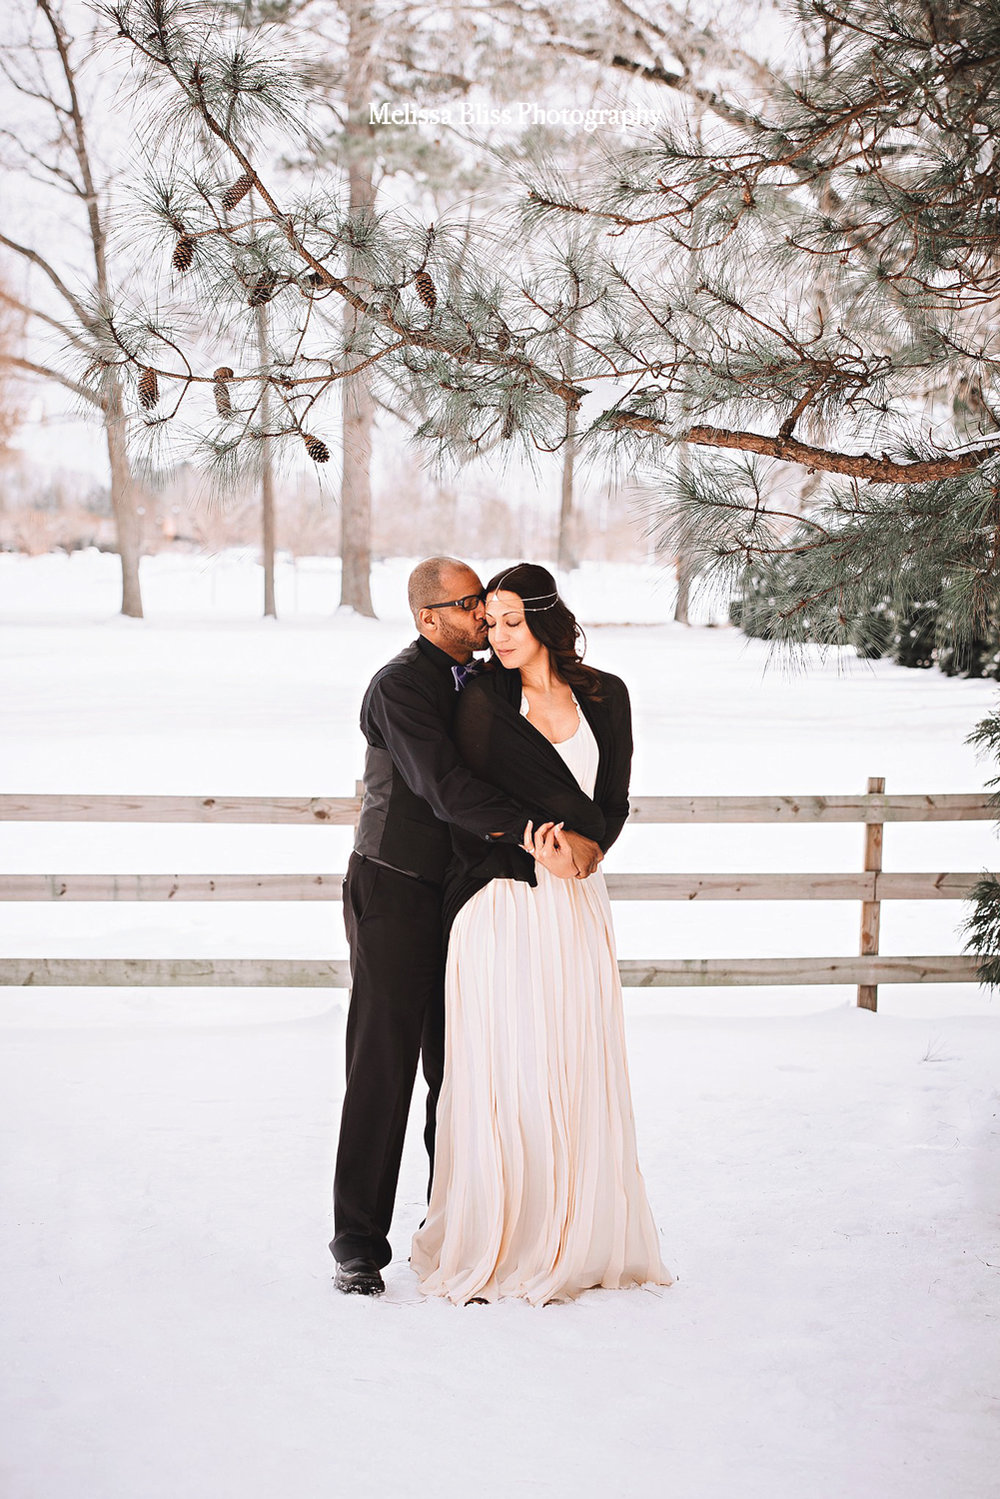 bride-and-groom-portrait-in-the-snow-virginia-beach-wedding-photographer-melissa-bliss-photography-va-winter-wedding.jpg